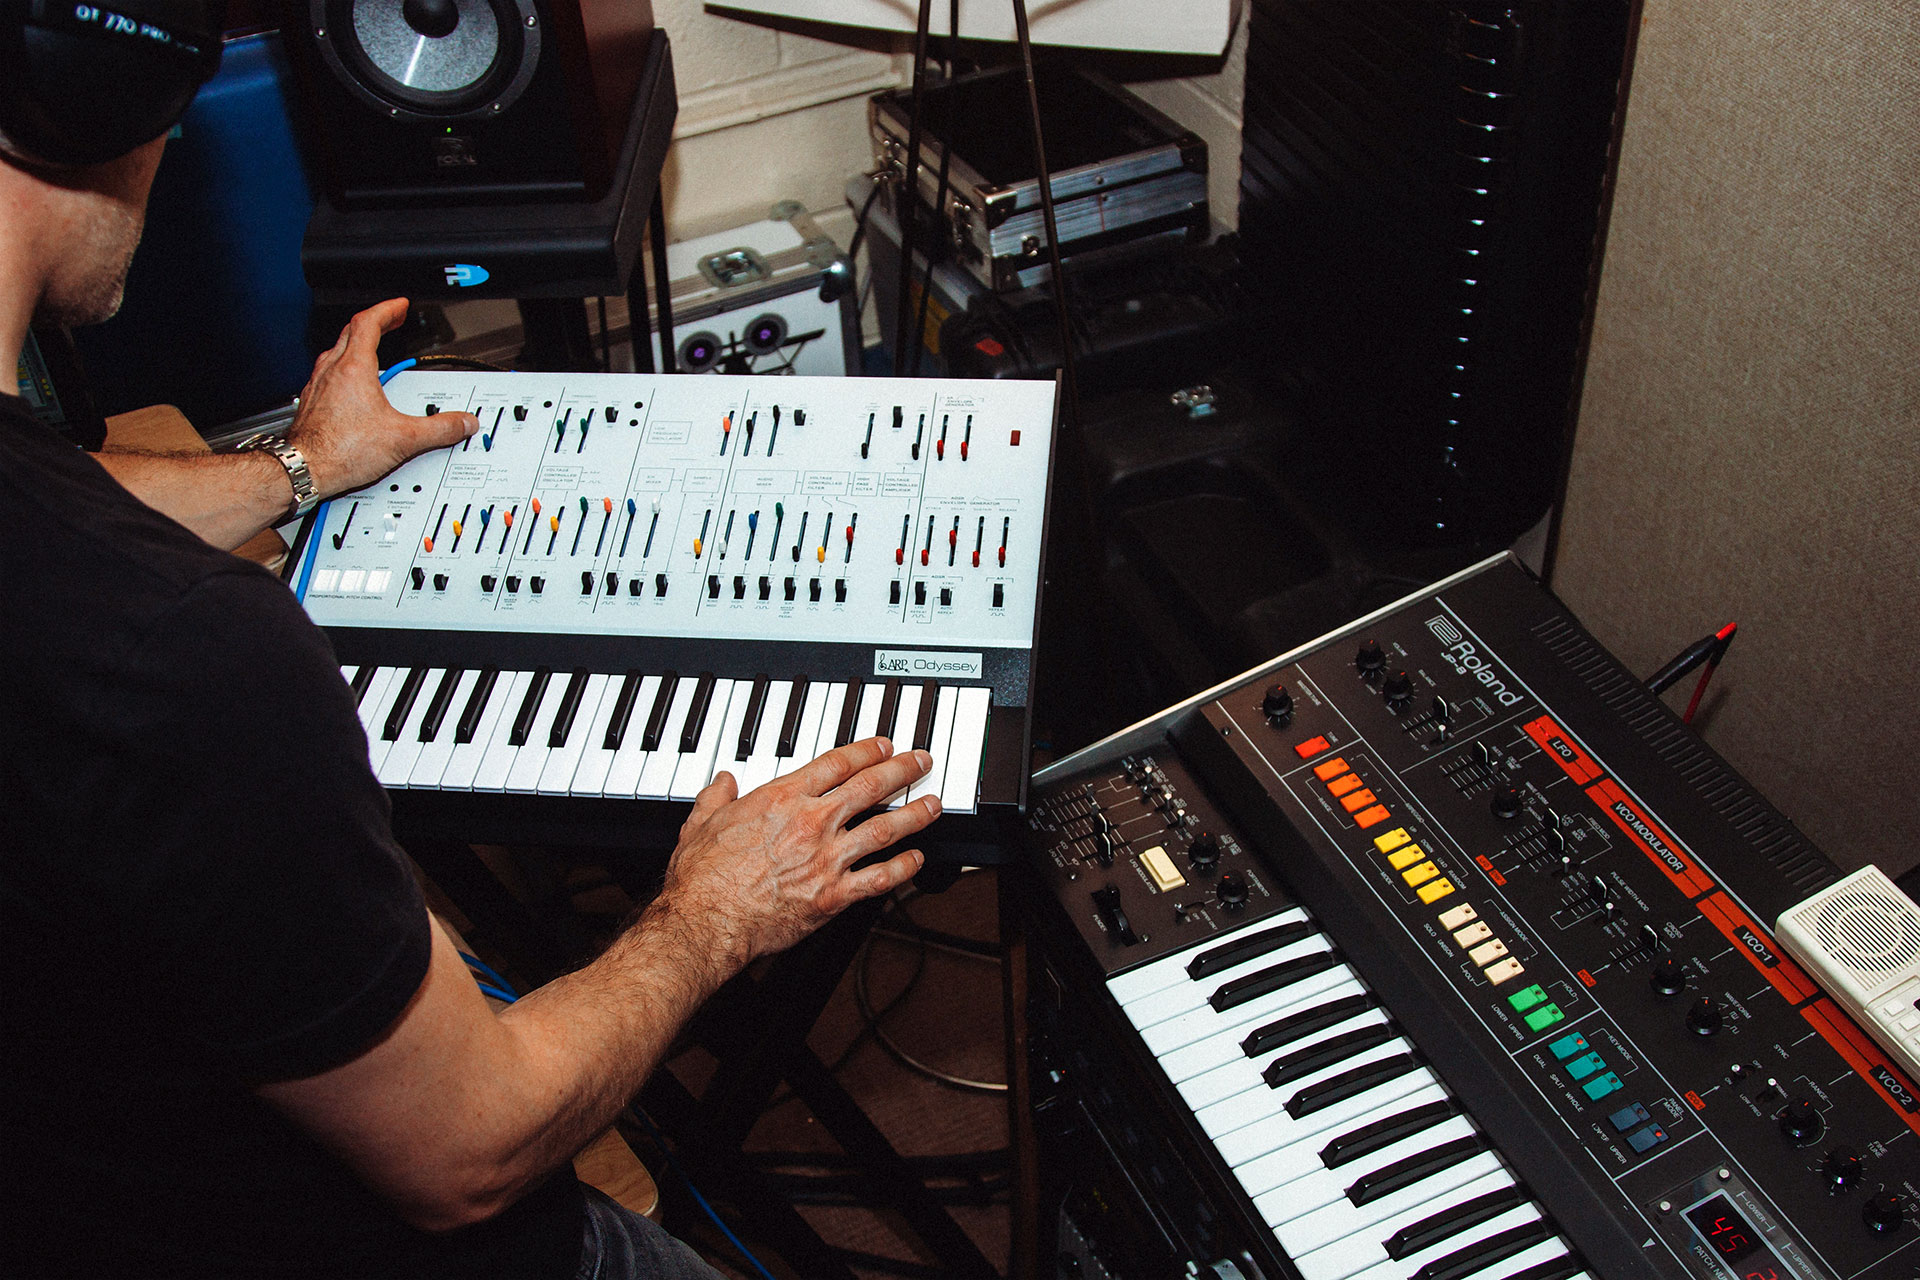 Stephen Becker playing the Odyssey Synthesizer